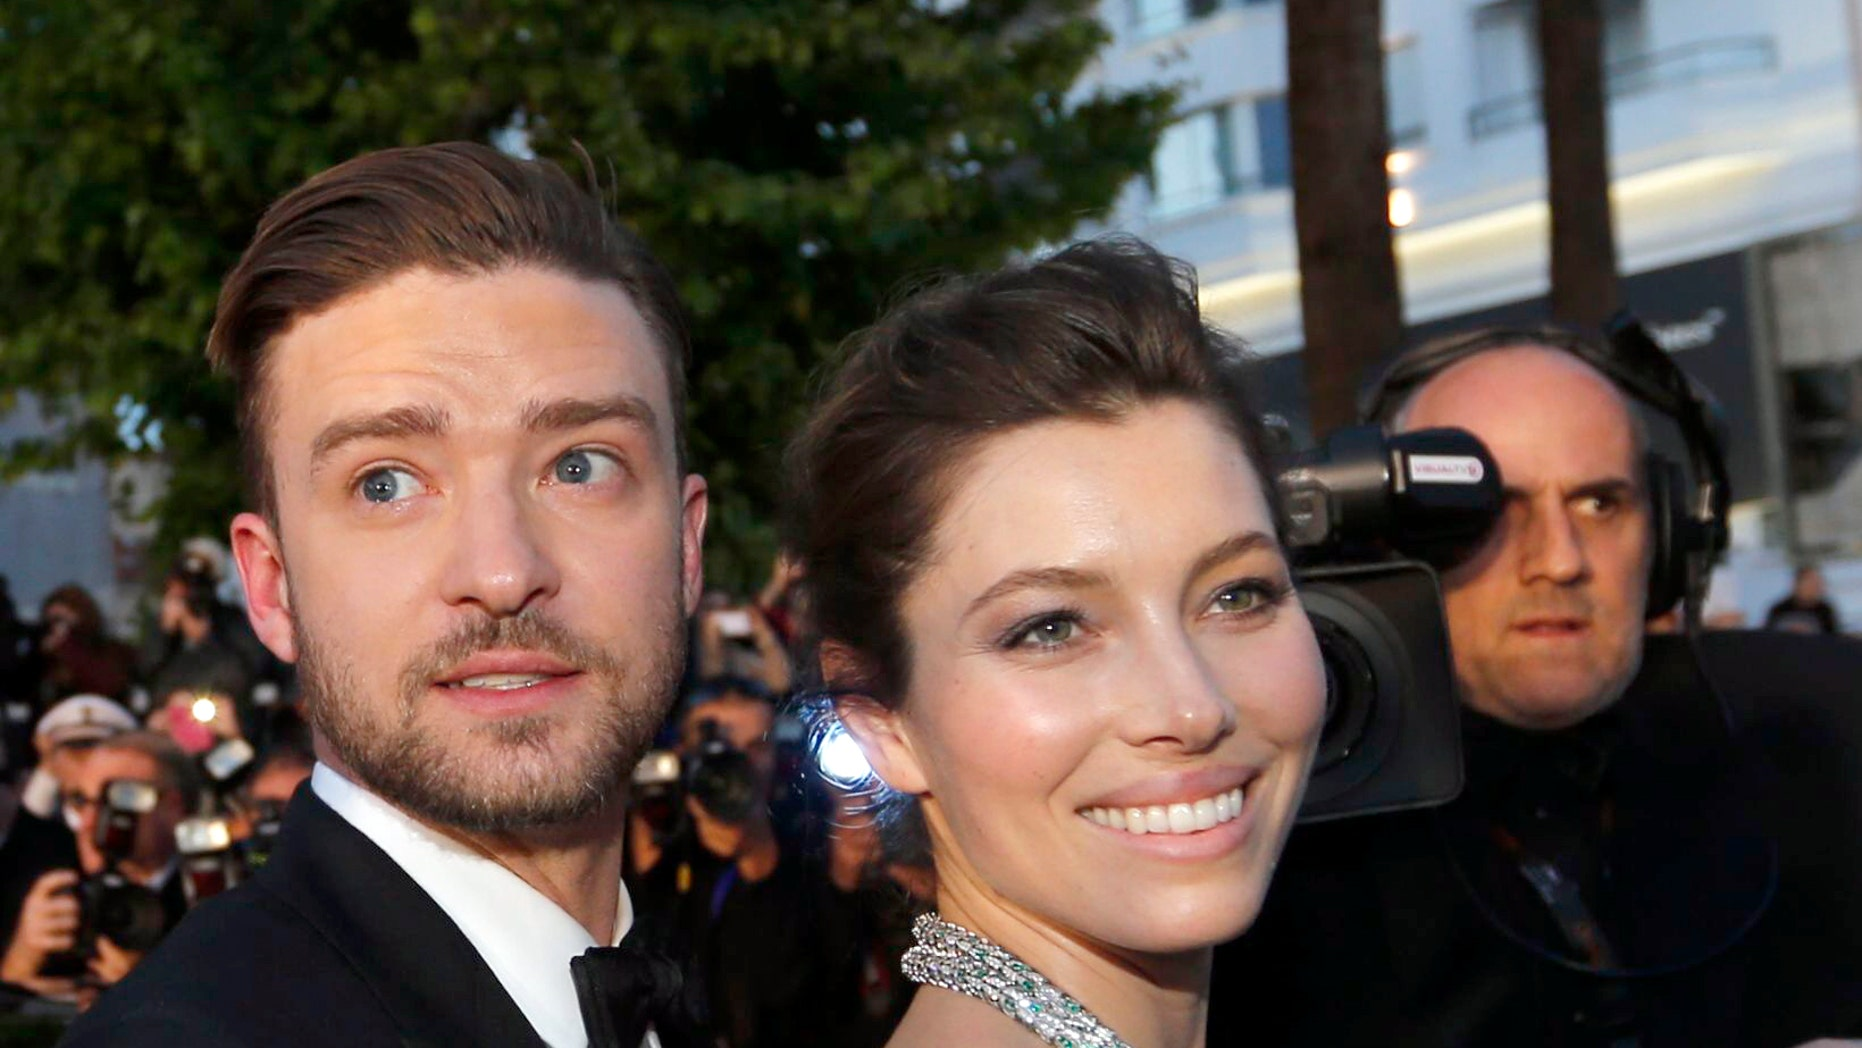 """May 19, 2013. Actor and singer Justin Timberlake (L) and actress Jessica Biel leave after the screening of the film """"Inside Llewyn Davis"""" in competition during the 66th Cannes Film Festival in Cannes."""